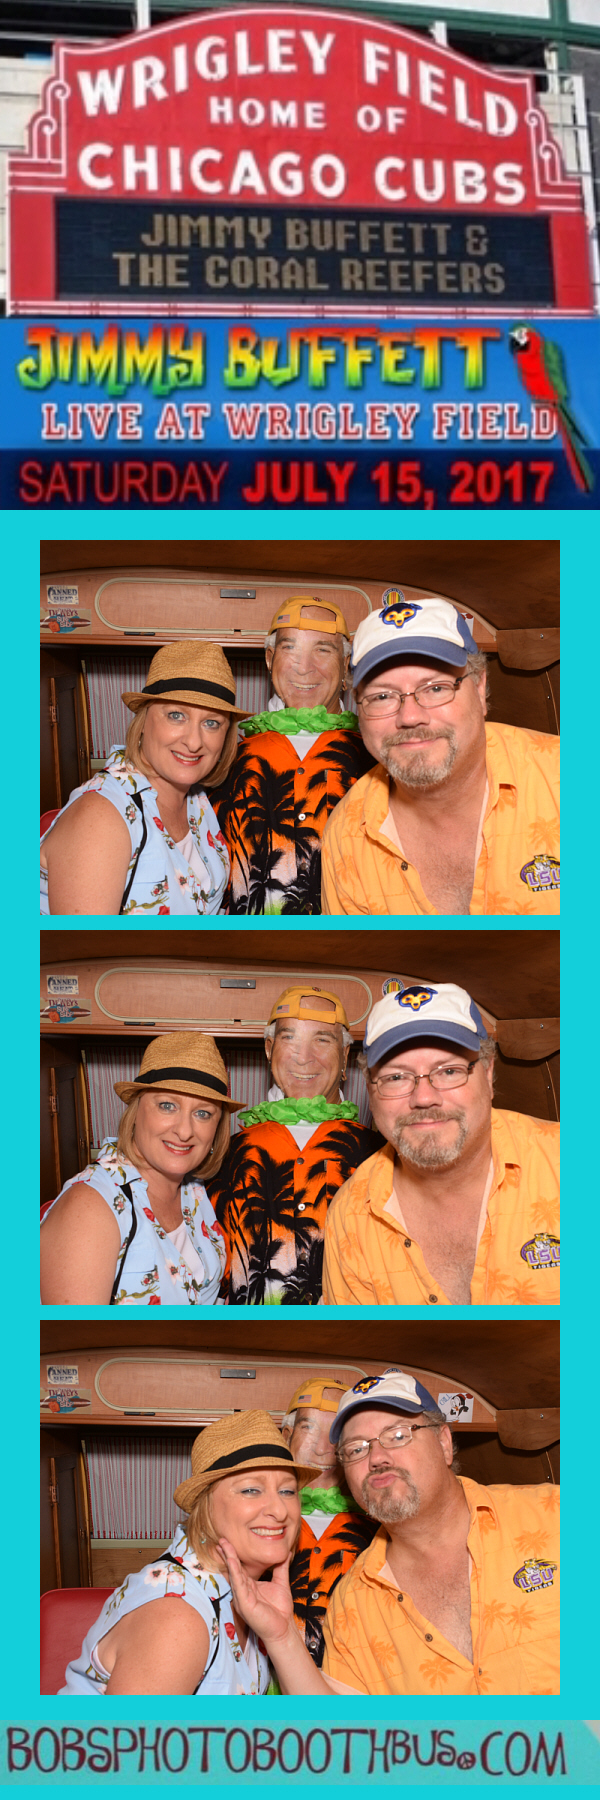 Jimmy Buffett final photo strip graphic_52.jpg